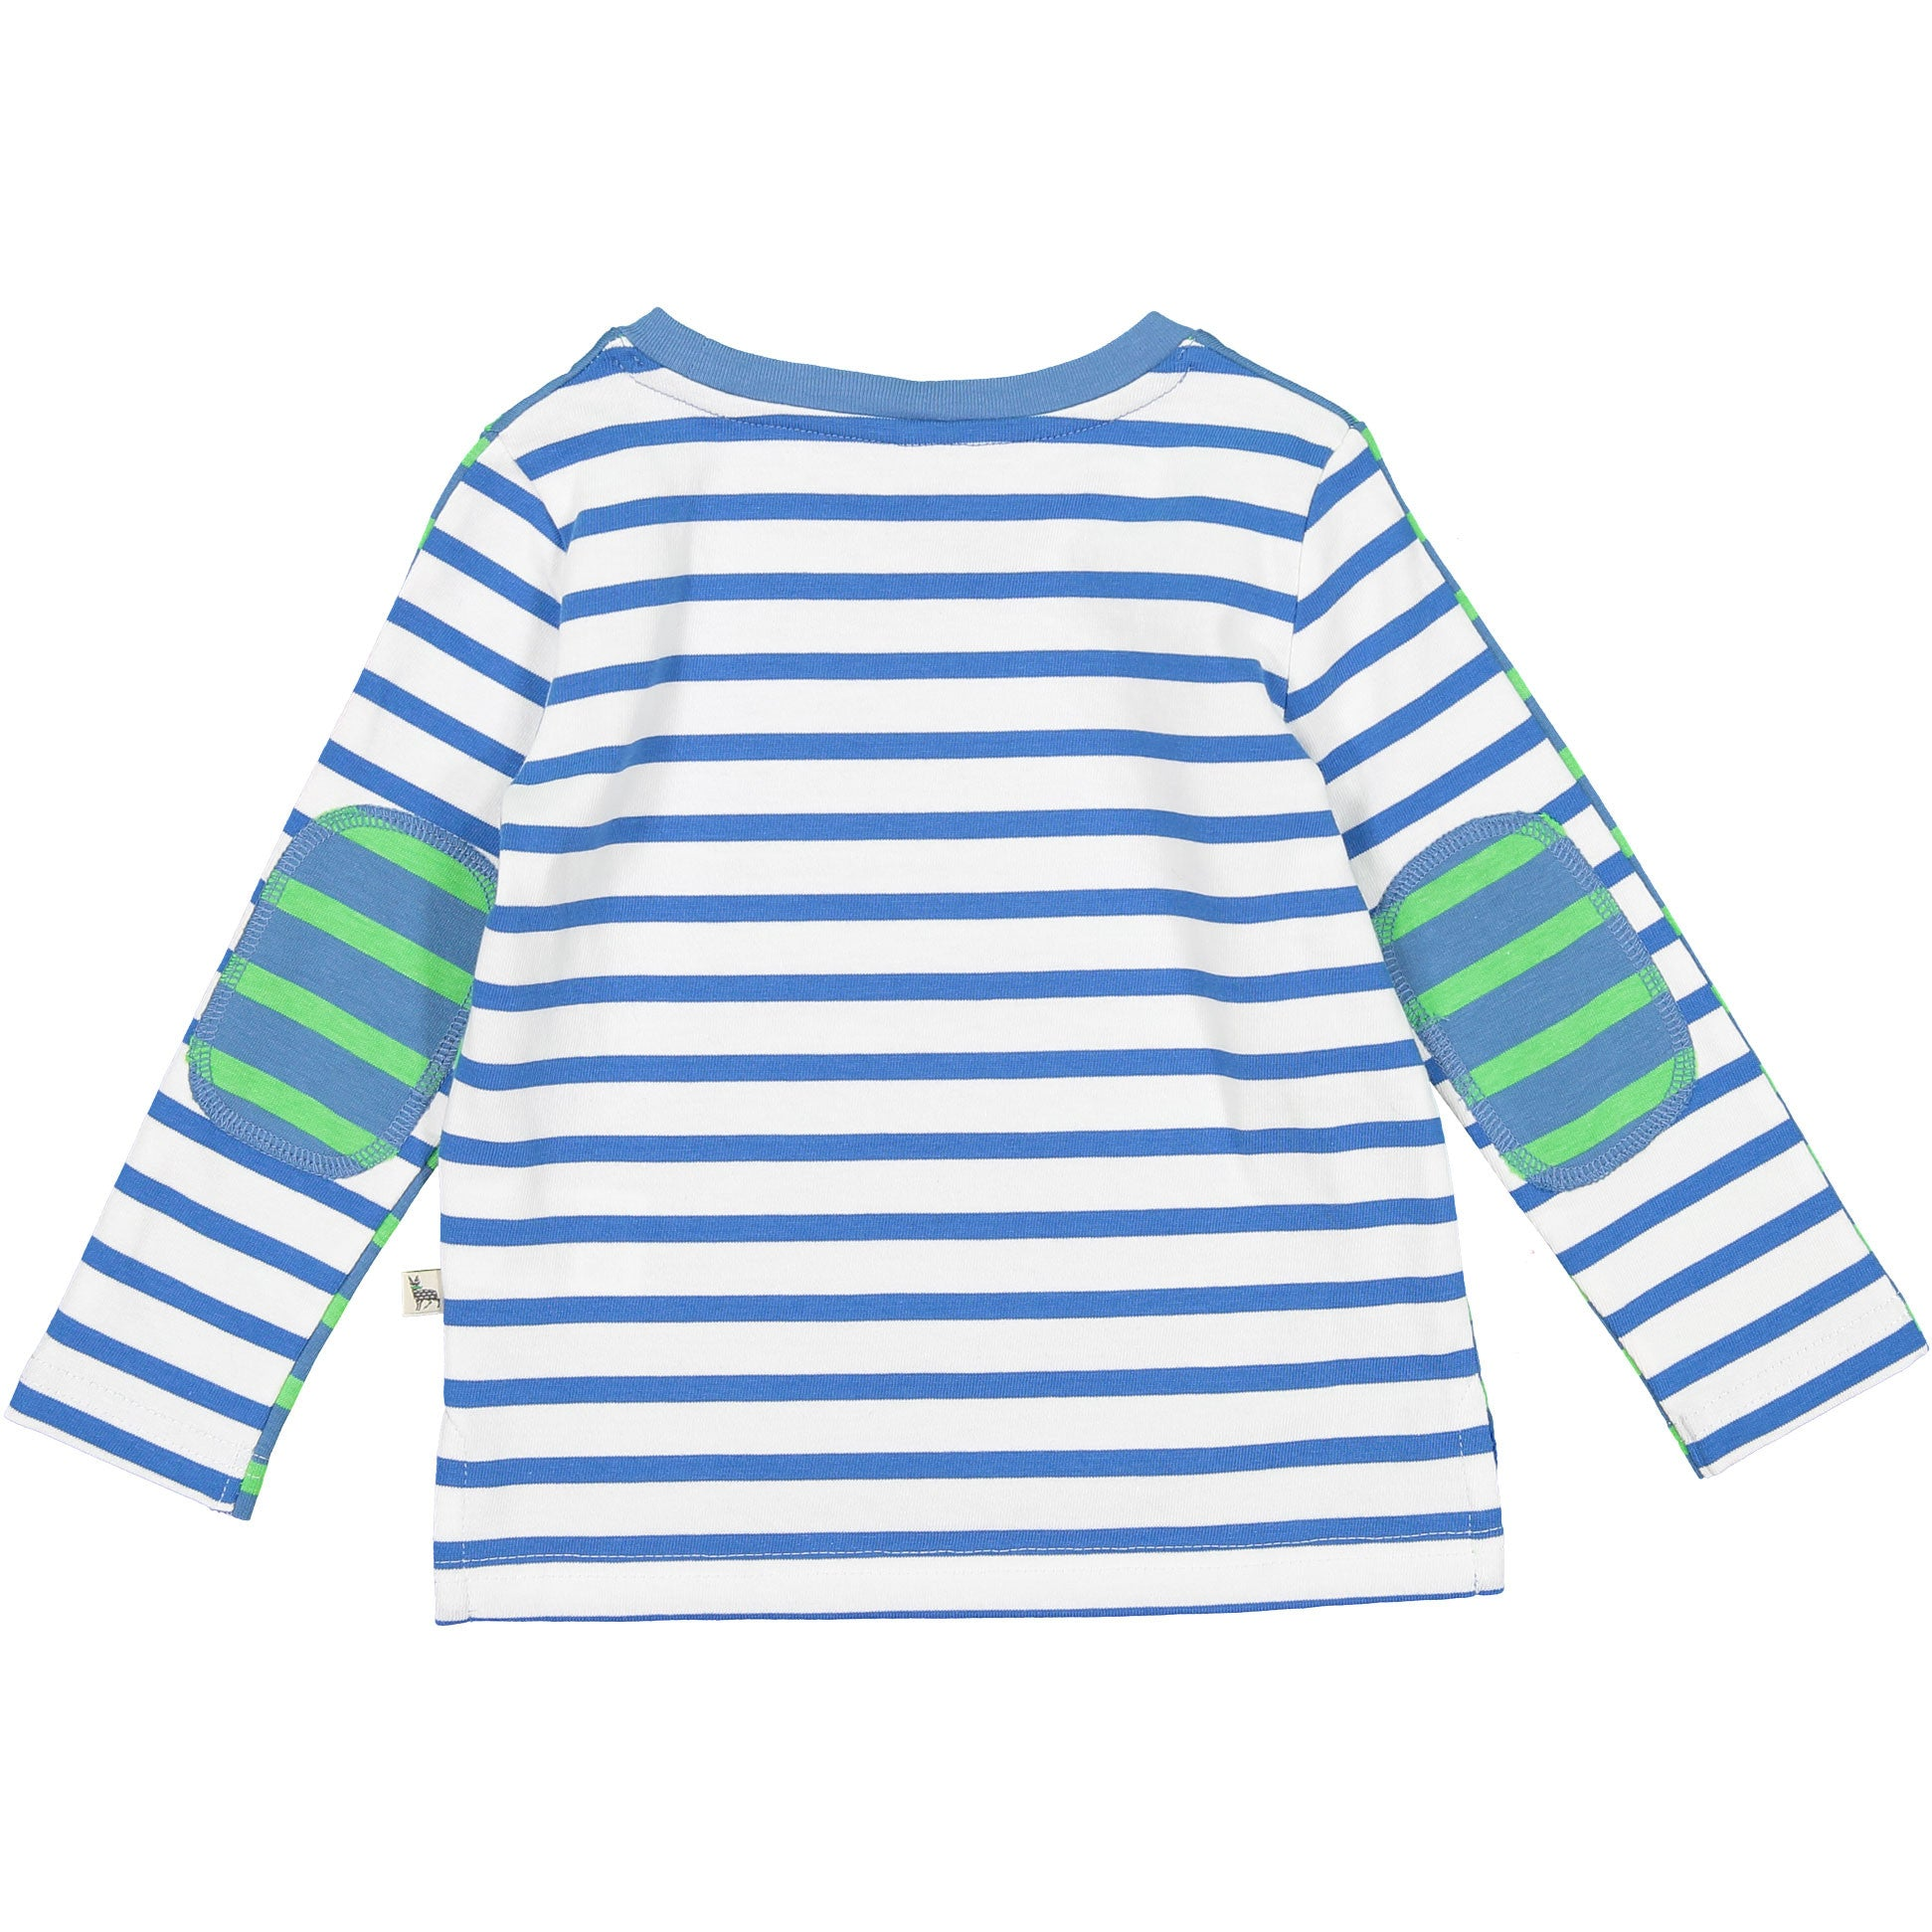 Stella Blue/Green Striped Shirt - Ladida